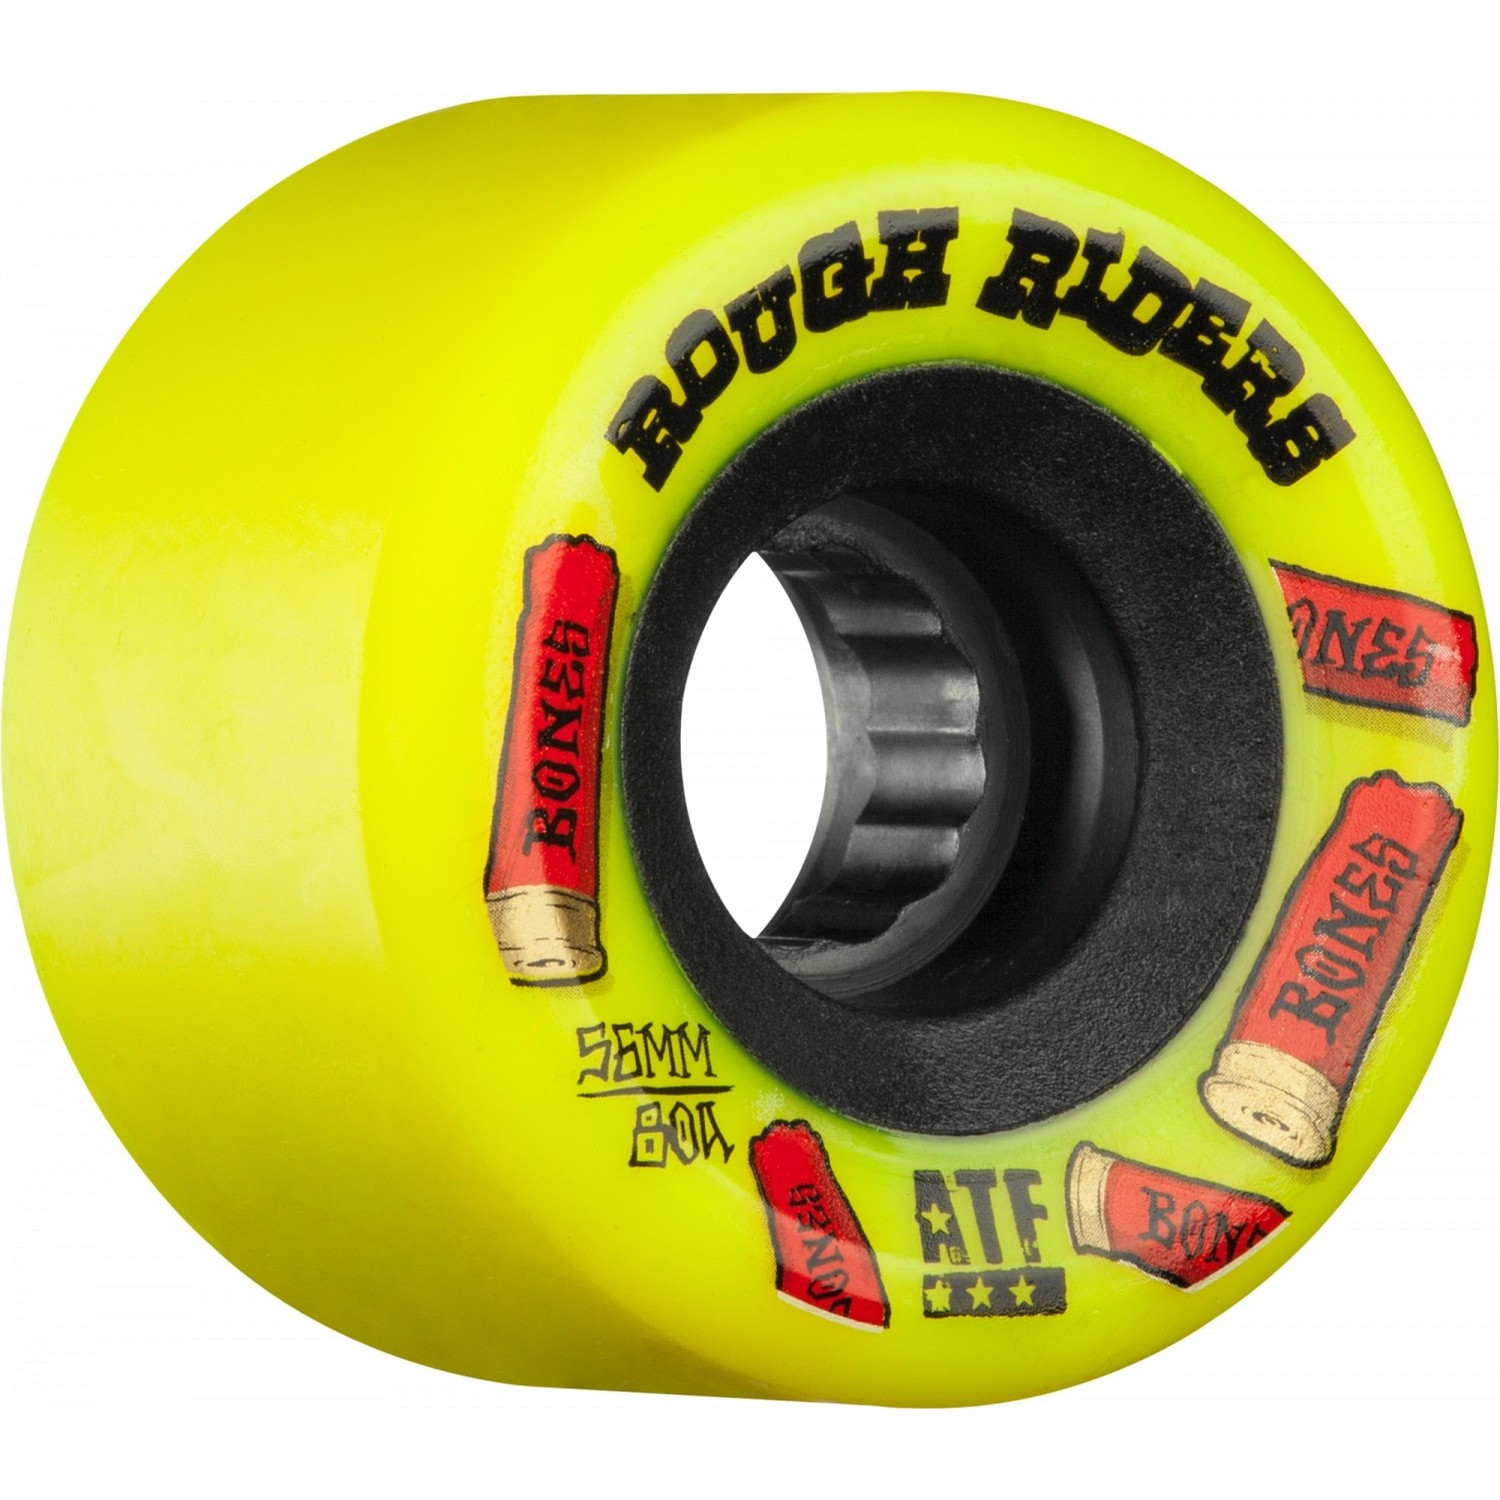 ATF Rough Riders YLW Shotgun Wheels